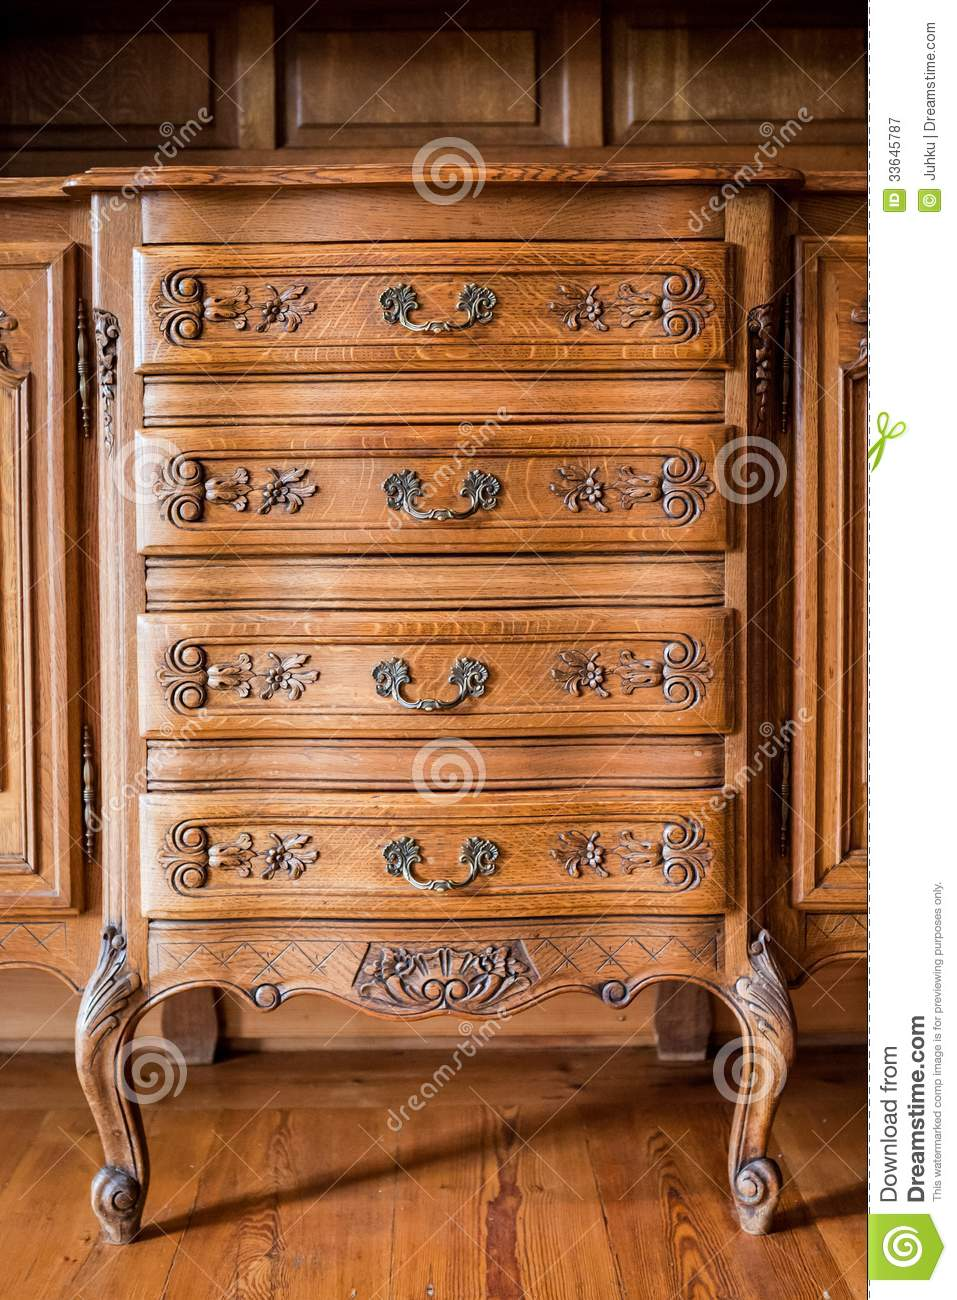 Antique Wood Carved Chest Of Drawers Stock Image Image